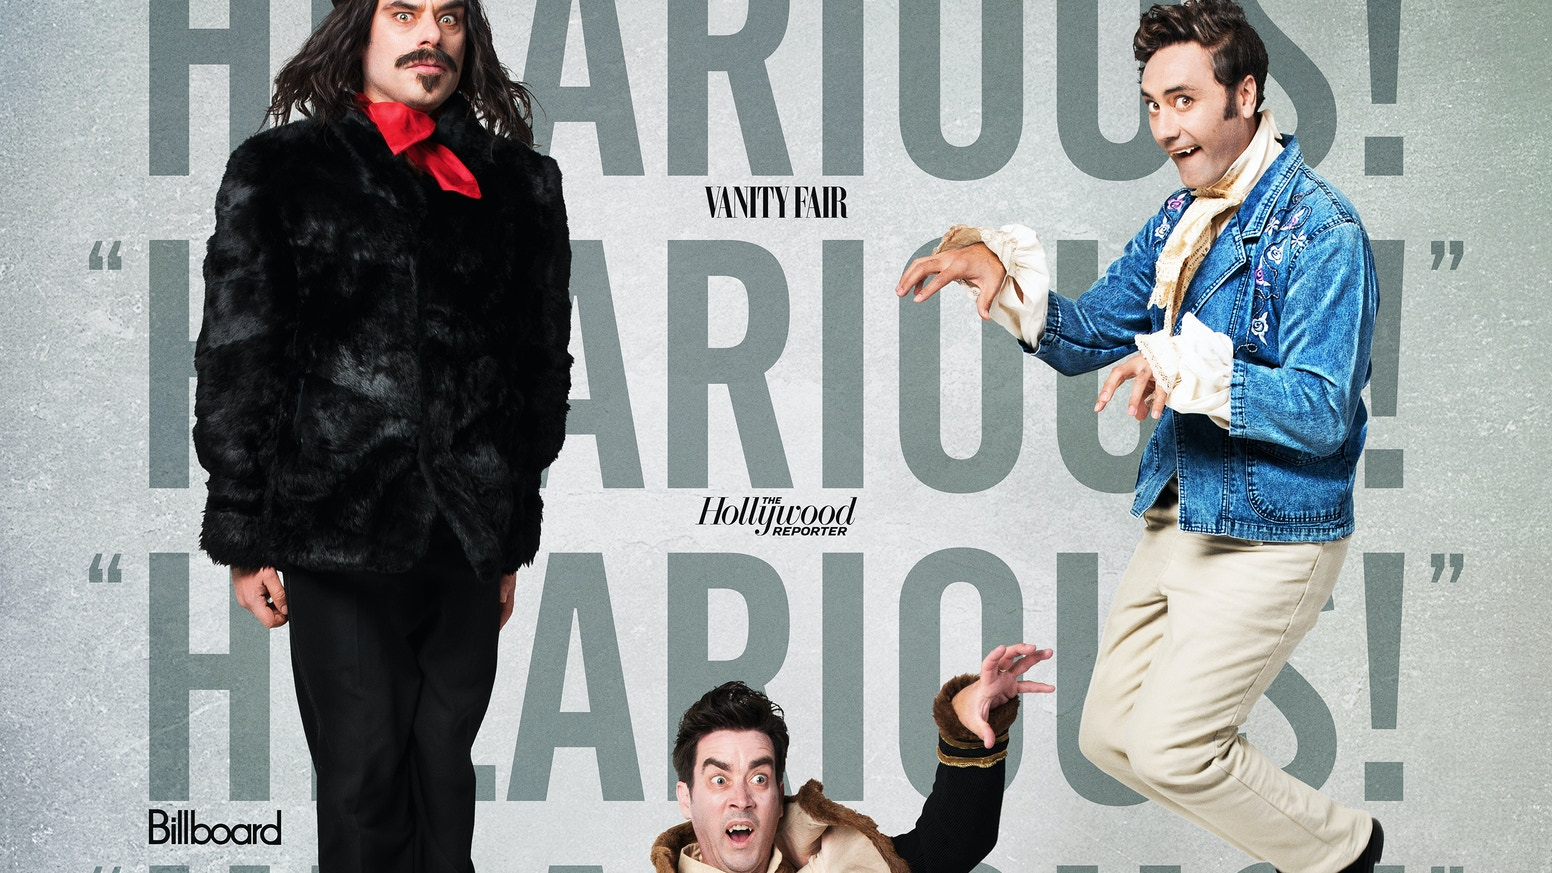 What We Do In The Shadows: The American Release by Jemaine Clement